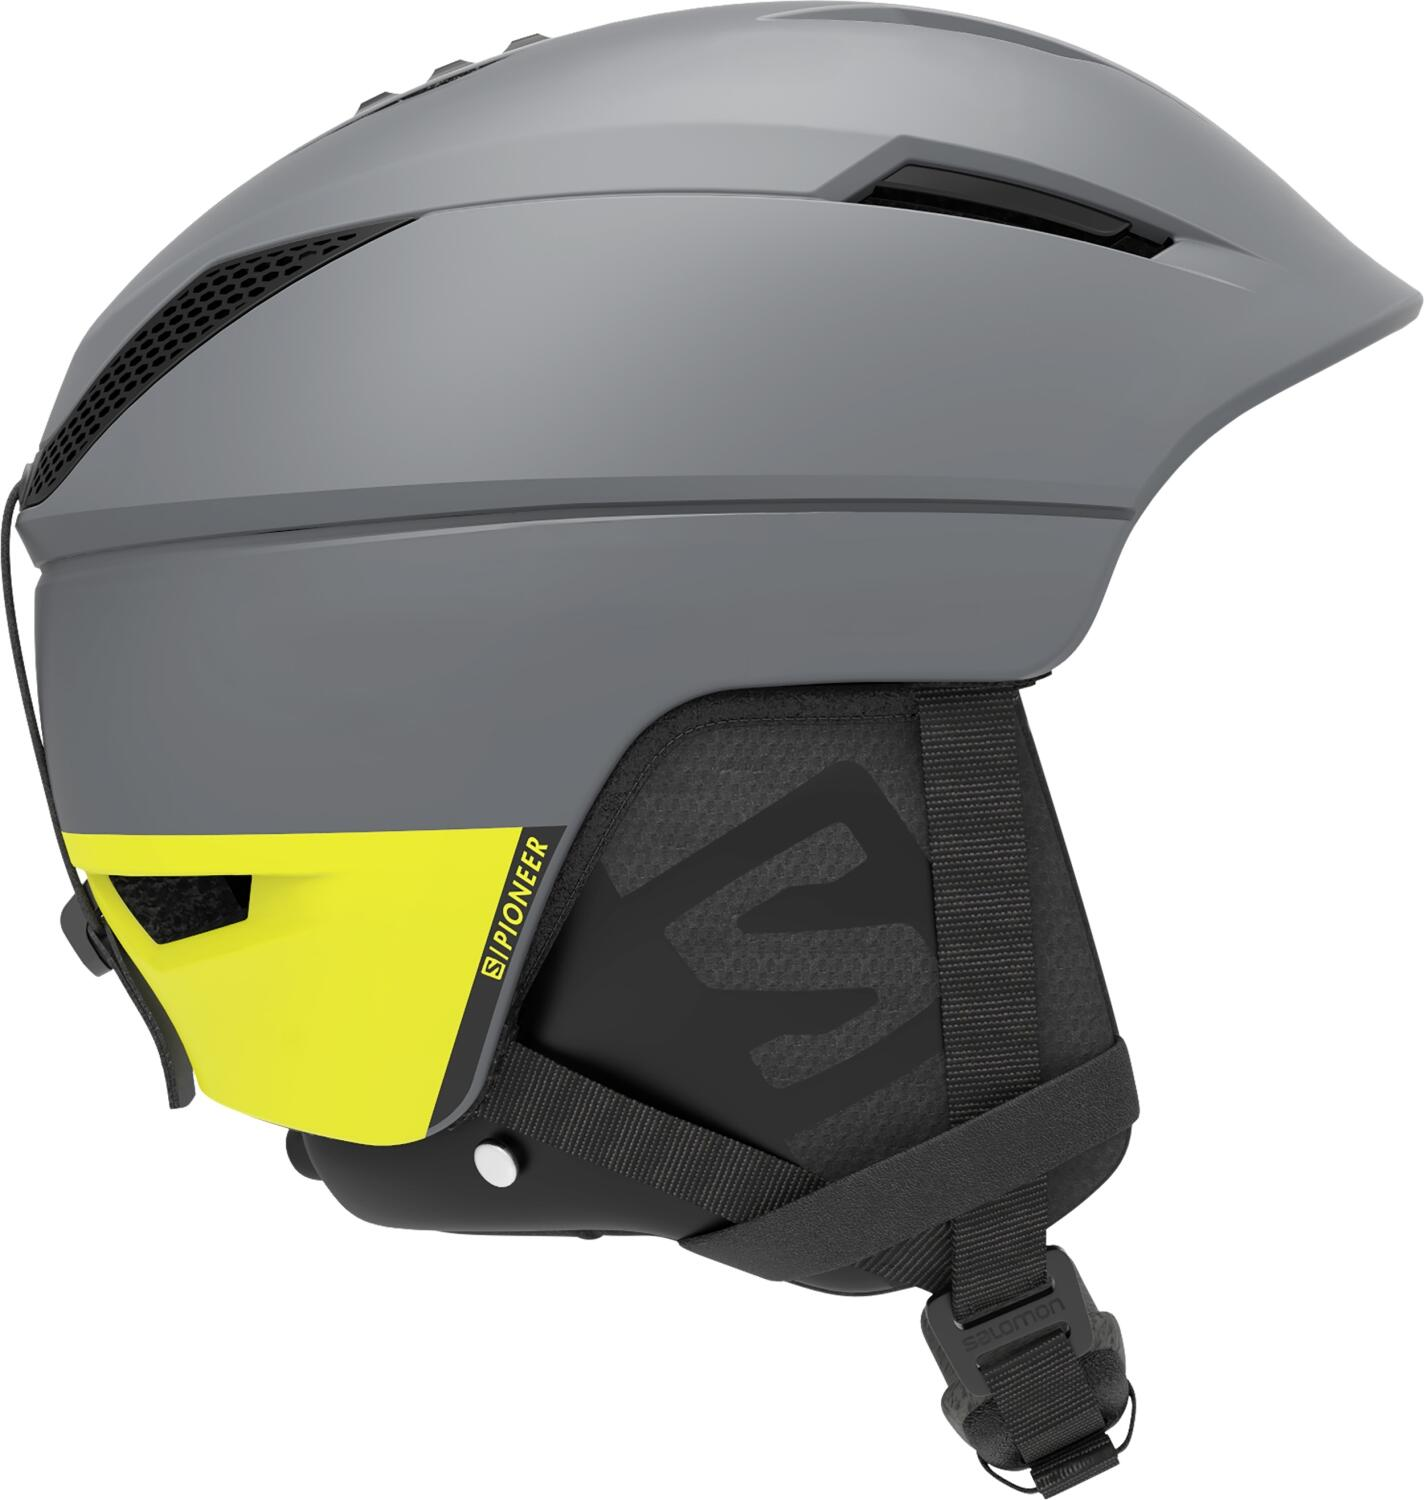 Salomon Pioneer Custom Air Skihelm